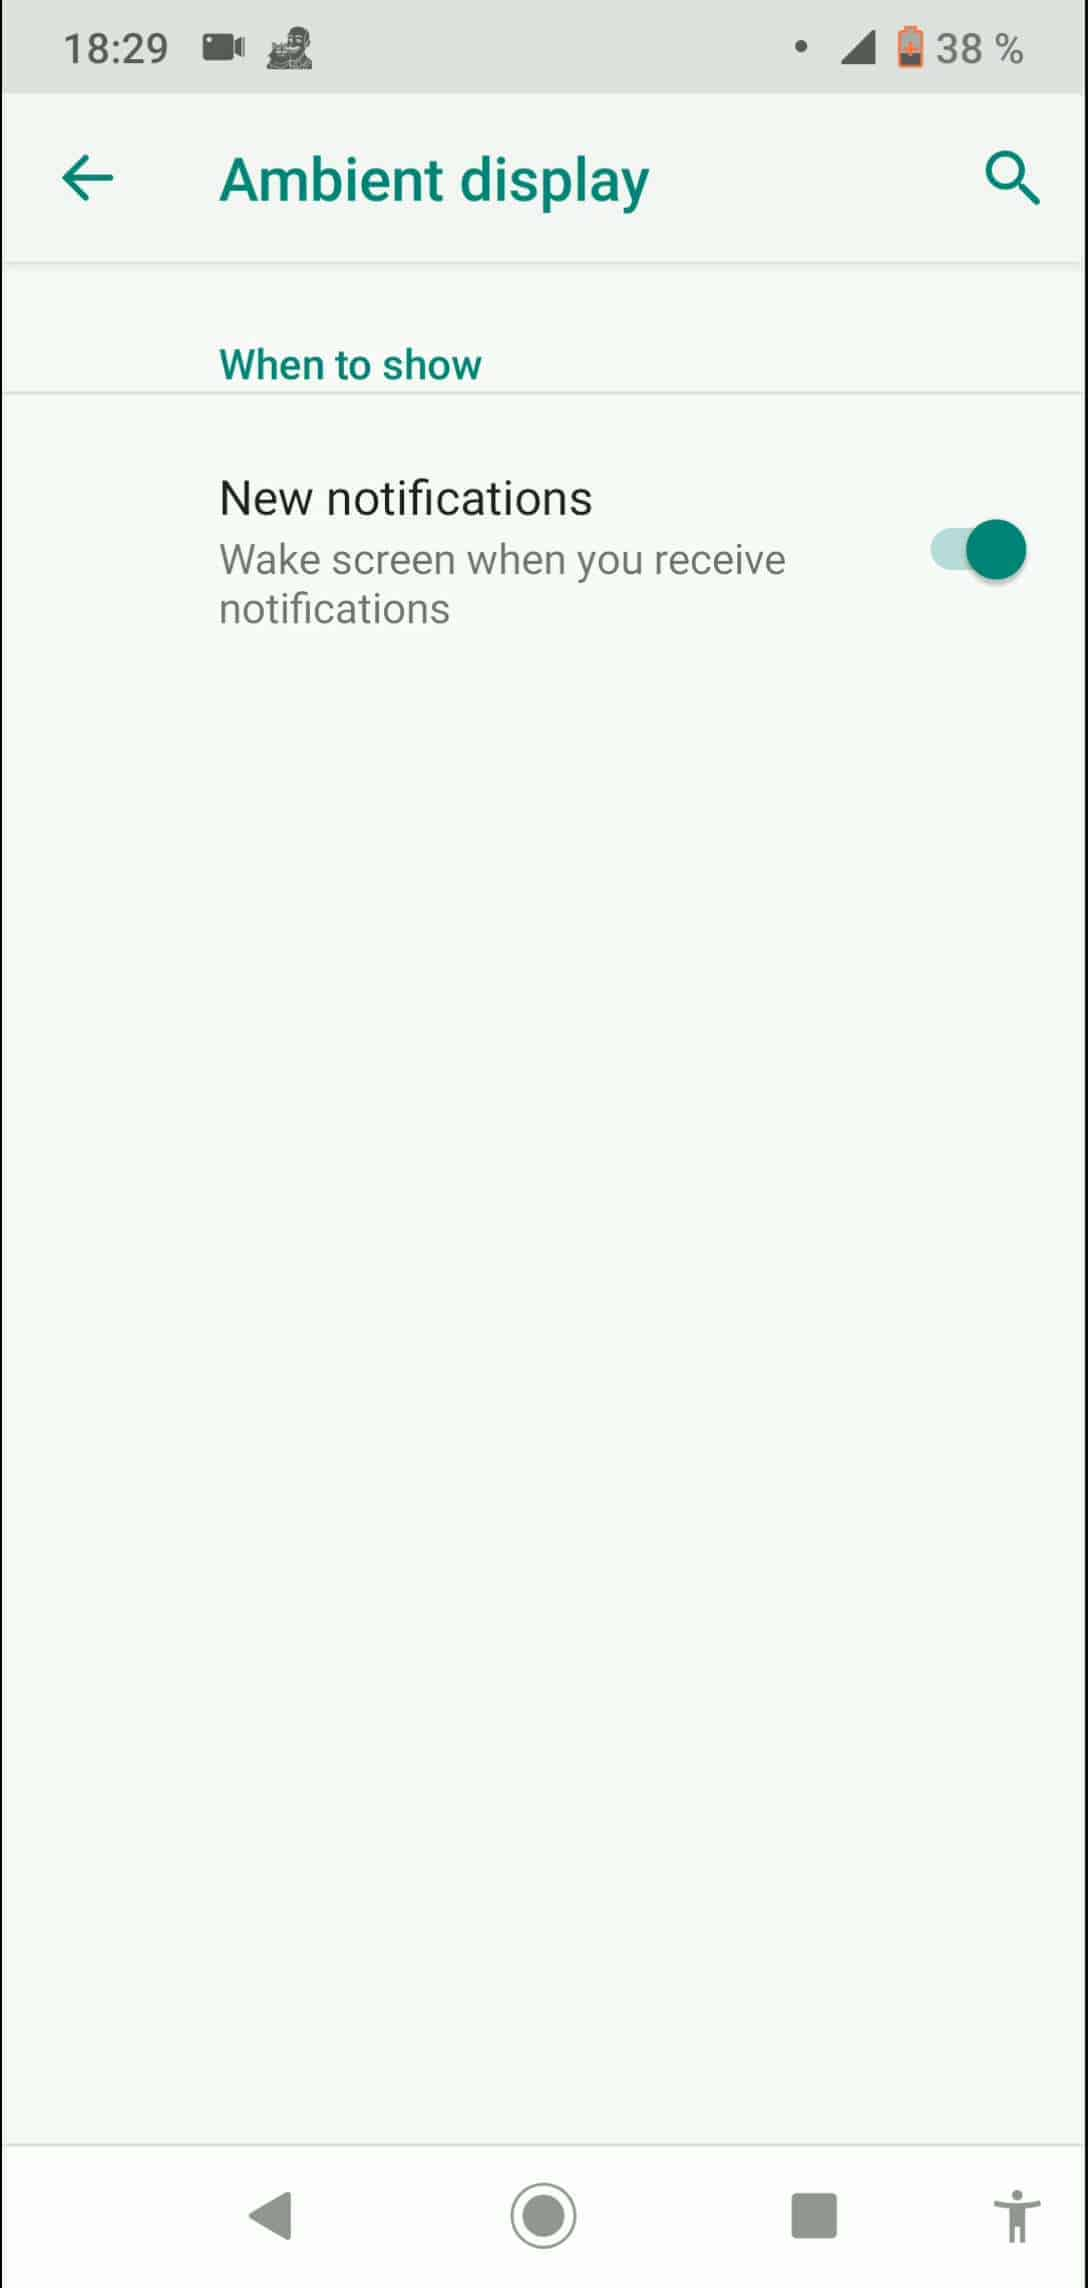 Step 5: Activate or deactivate New notifications